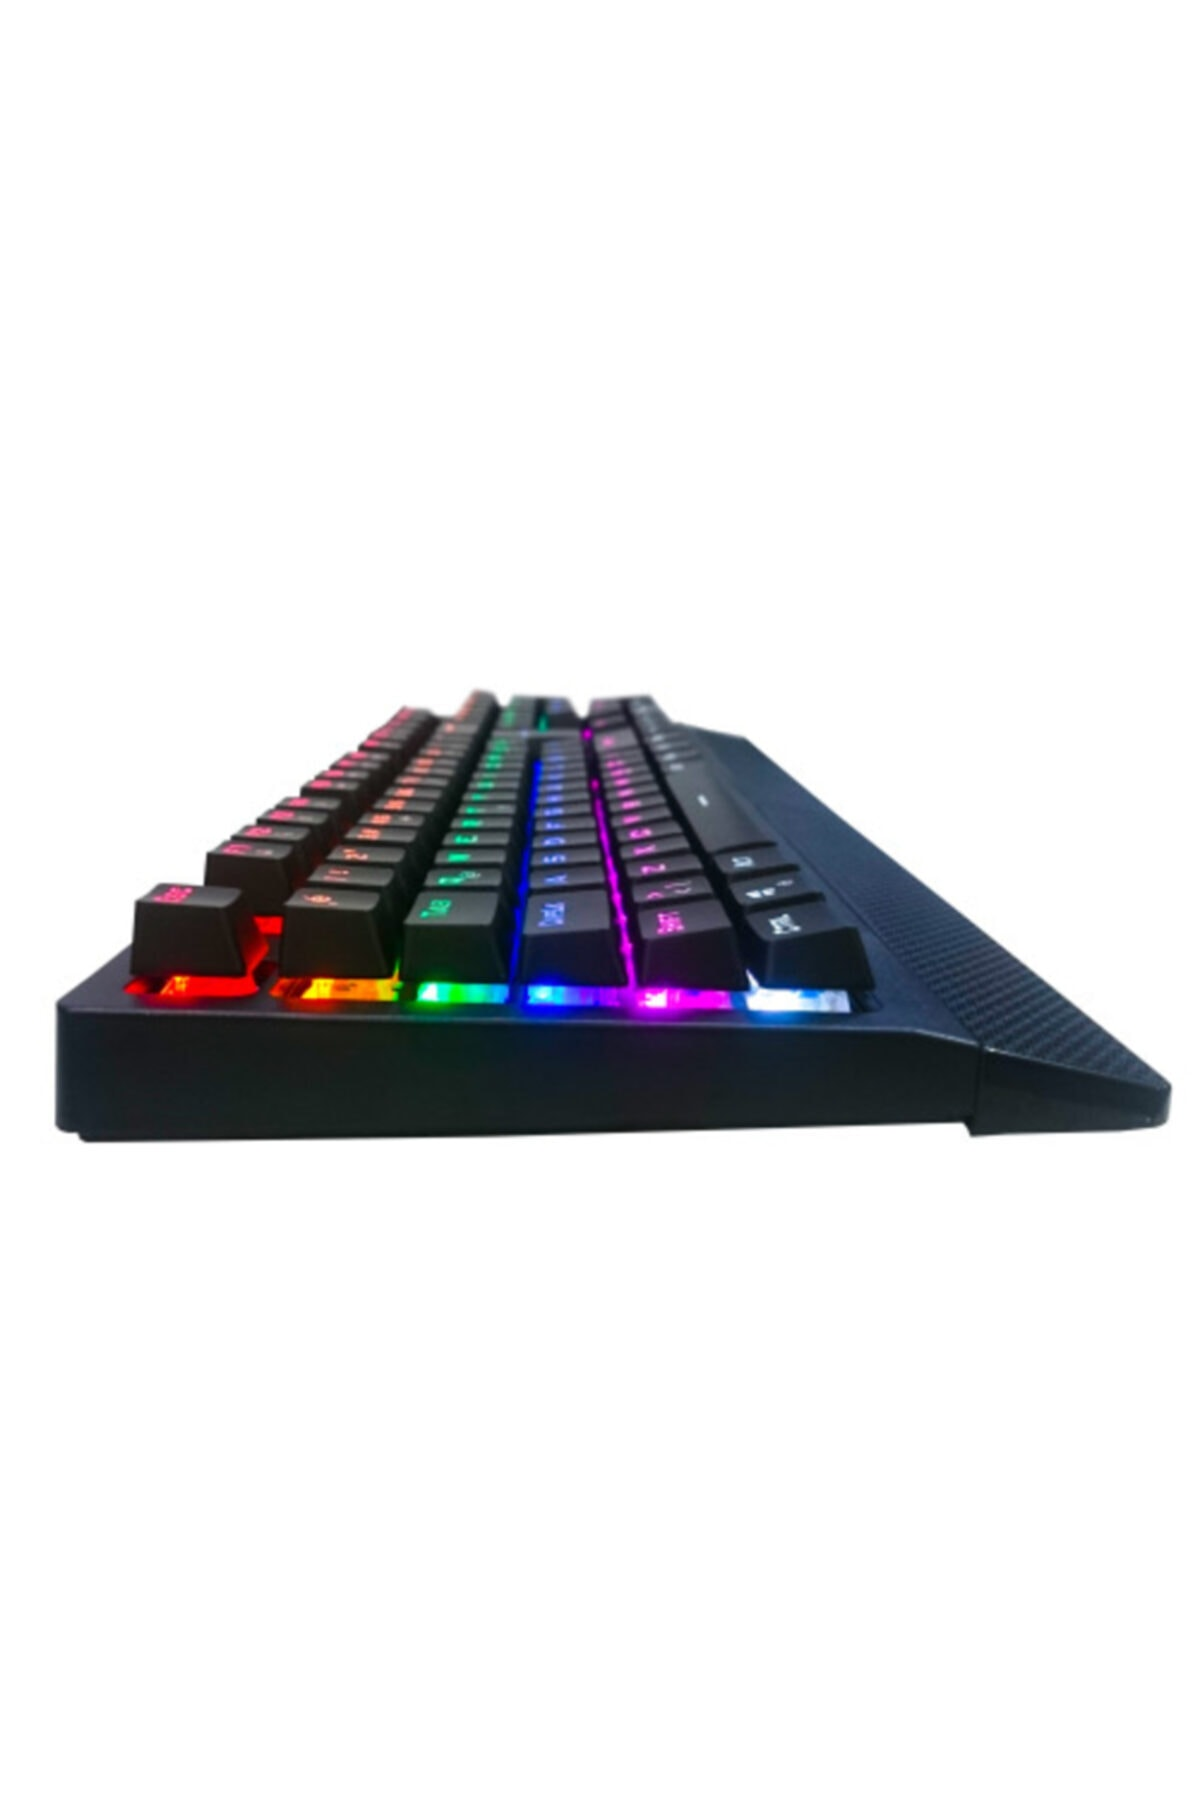 Philips Phılıps Momentum Spk8403/62 Gaming Klavye Rainbow Lighting, Mechanical Usb 1